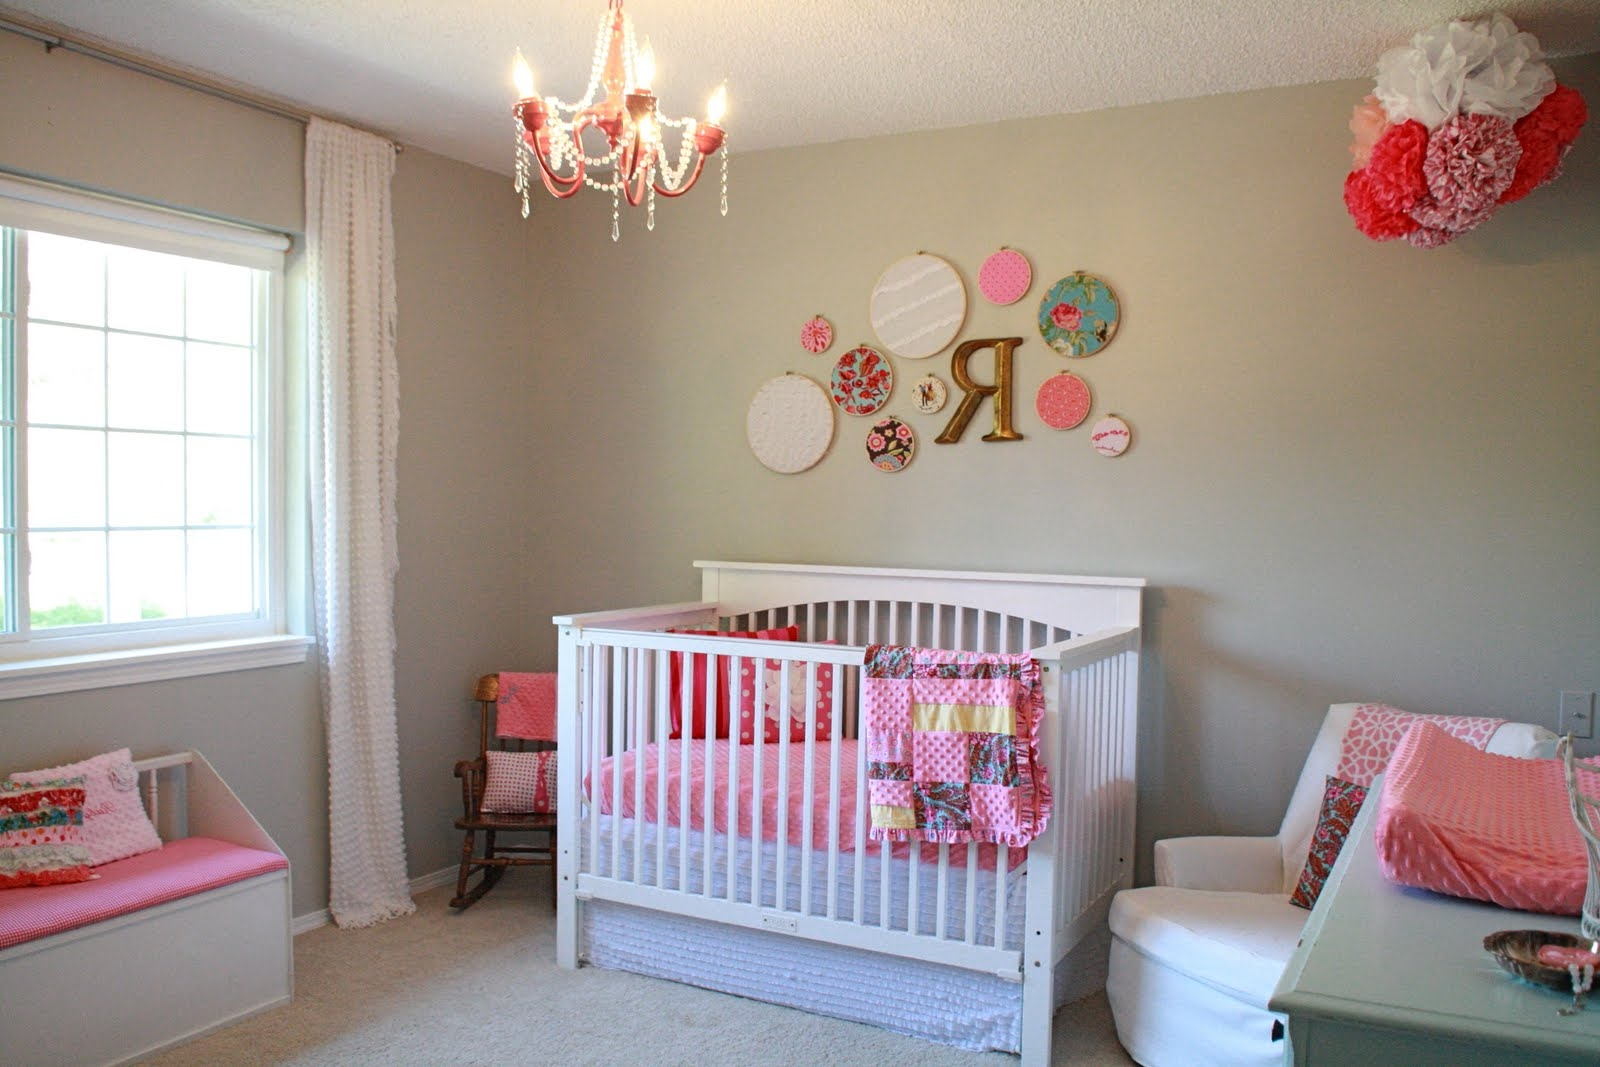 Tips For Decorating A Nurserydattalo Dattalo